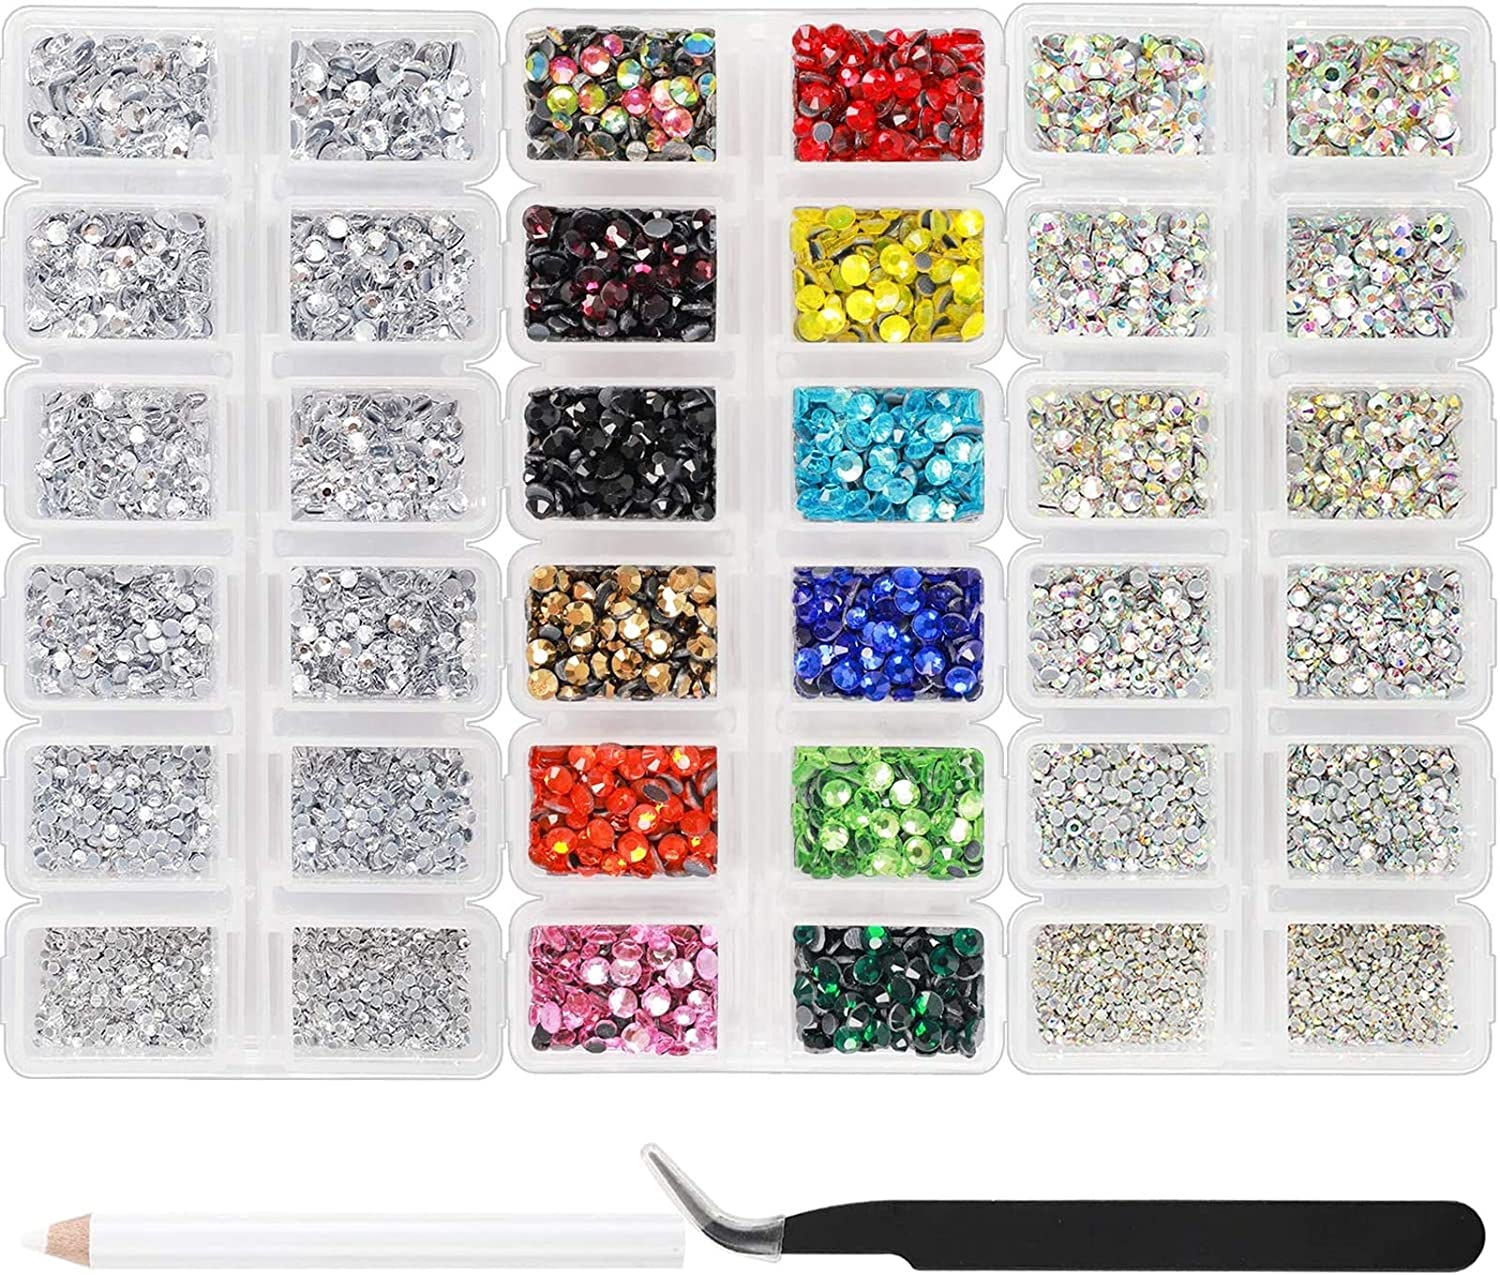 Outuxed 10080pcs Hotfix Rhinestones Flatback Round Crystal Glass Gems Set with Clear Crystal and Clear AB 6 Sizes 12 Mixed Color 3-4mm for DIY Craft Muiticolor Rhinestones